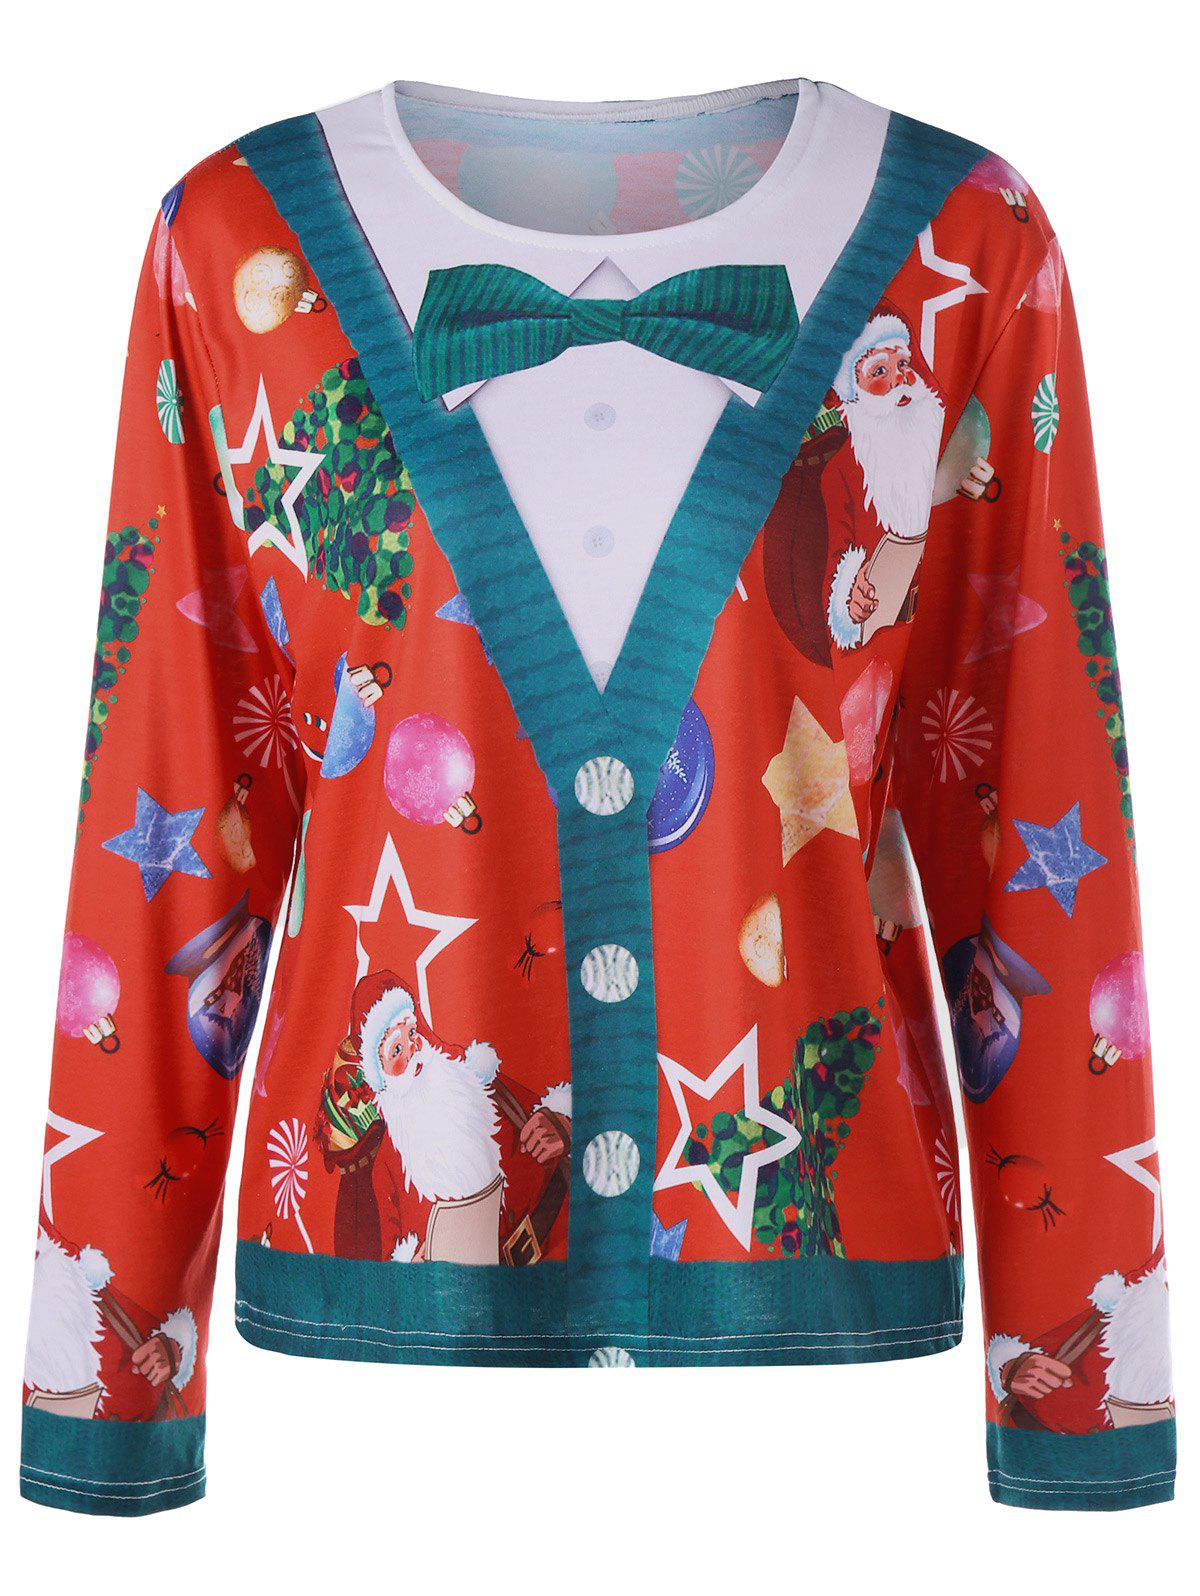 Plus Size Christmas Santa Claus Long Sleeve TopWOMEN<br><br>Size: 5XL; Color: RED; Material: Polyester,Spandex; Shirt Length: Long; Sleeve Length: Full; Collar: Round Neck; Style: Casual; Season: Fall,Spring; Pattern Type: Character; Weight: 0.3300kg; Package Contents: 1 x Top;